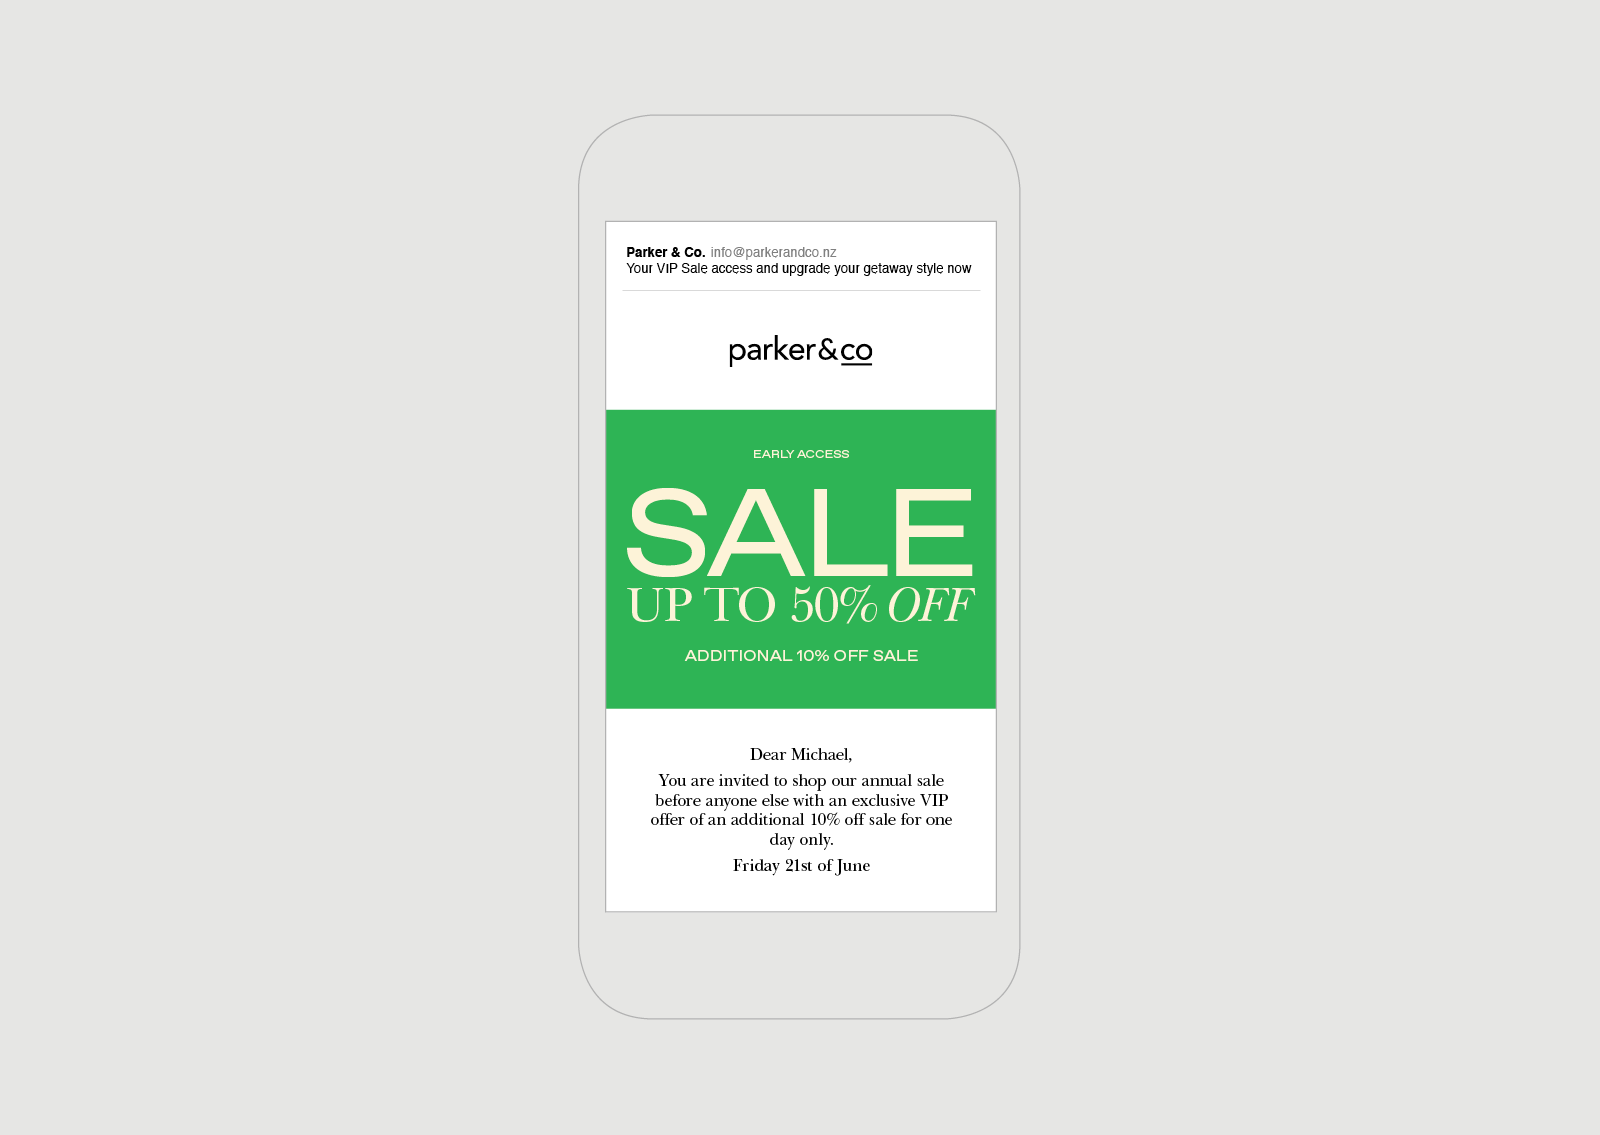 Parker and Co EDM Getaway Sale Campaign 2019 Auckland NZ Retail High fashion